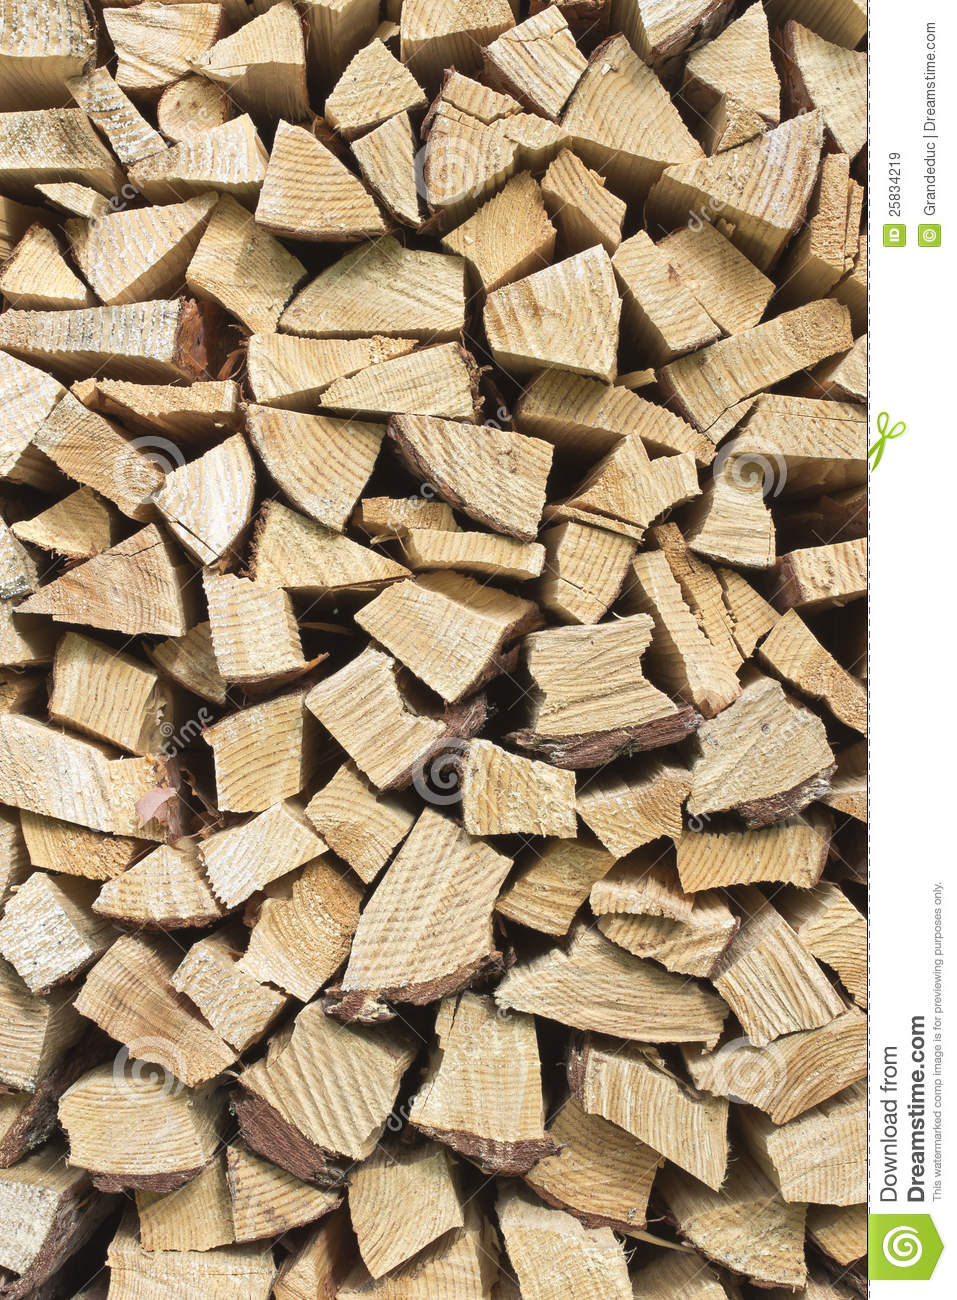 Wood Pile Royalty Free Stock Images Image 25834219